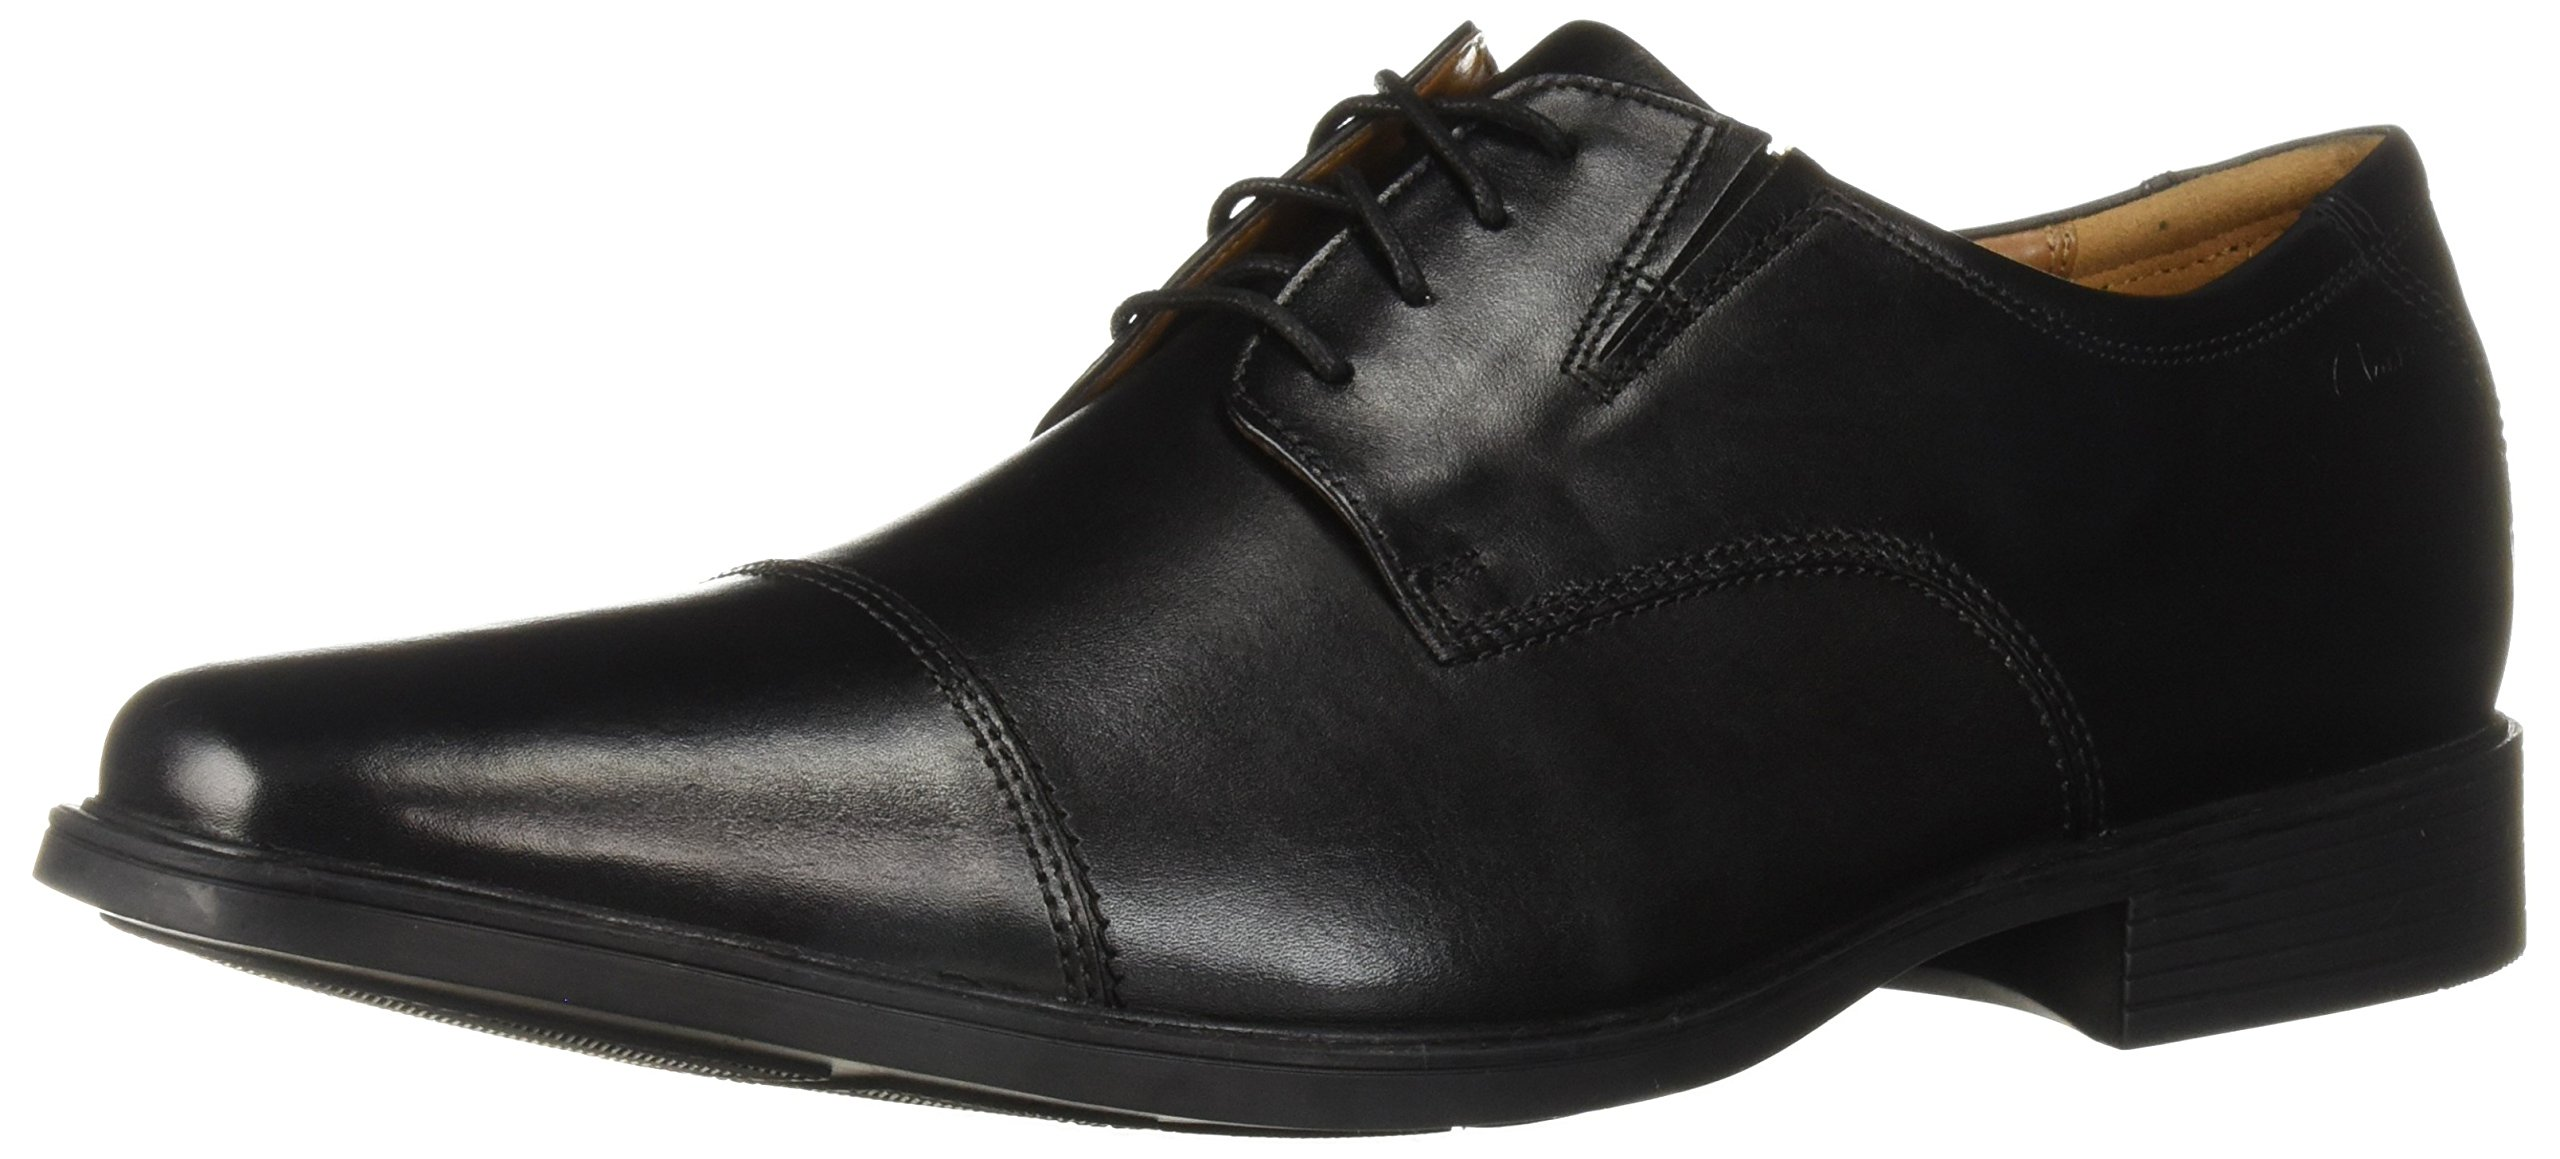 CLARKS Men's Tilden Cap Oxford Shoe,Black Leather,9.5 M US